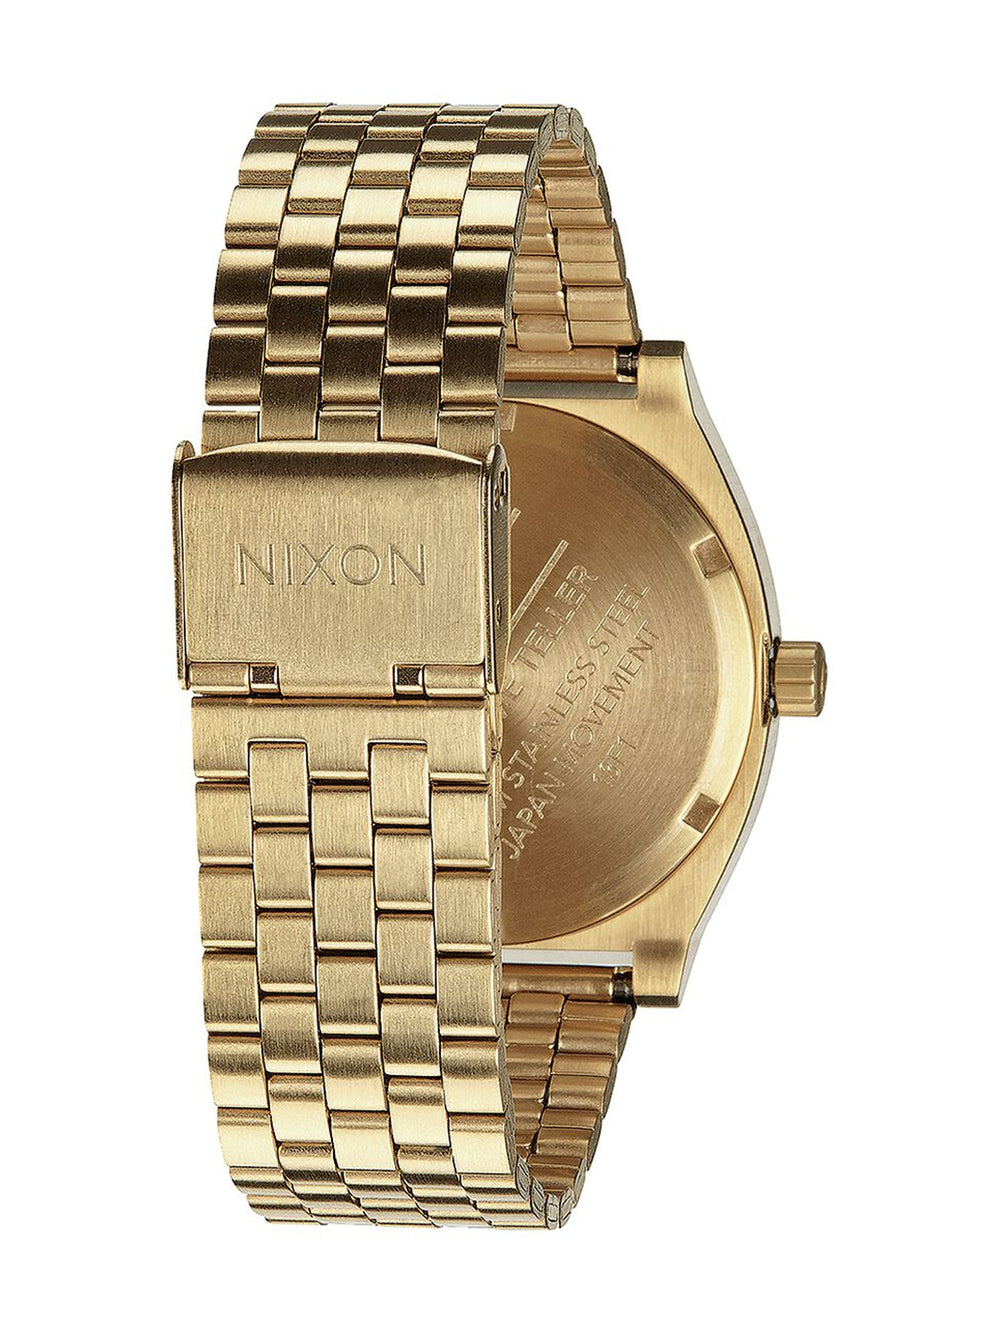 MENS TIME TELLER - GLD/GRN SUNRAY WATCH